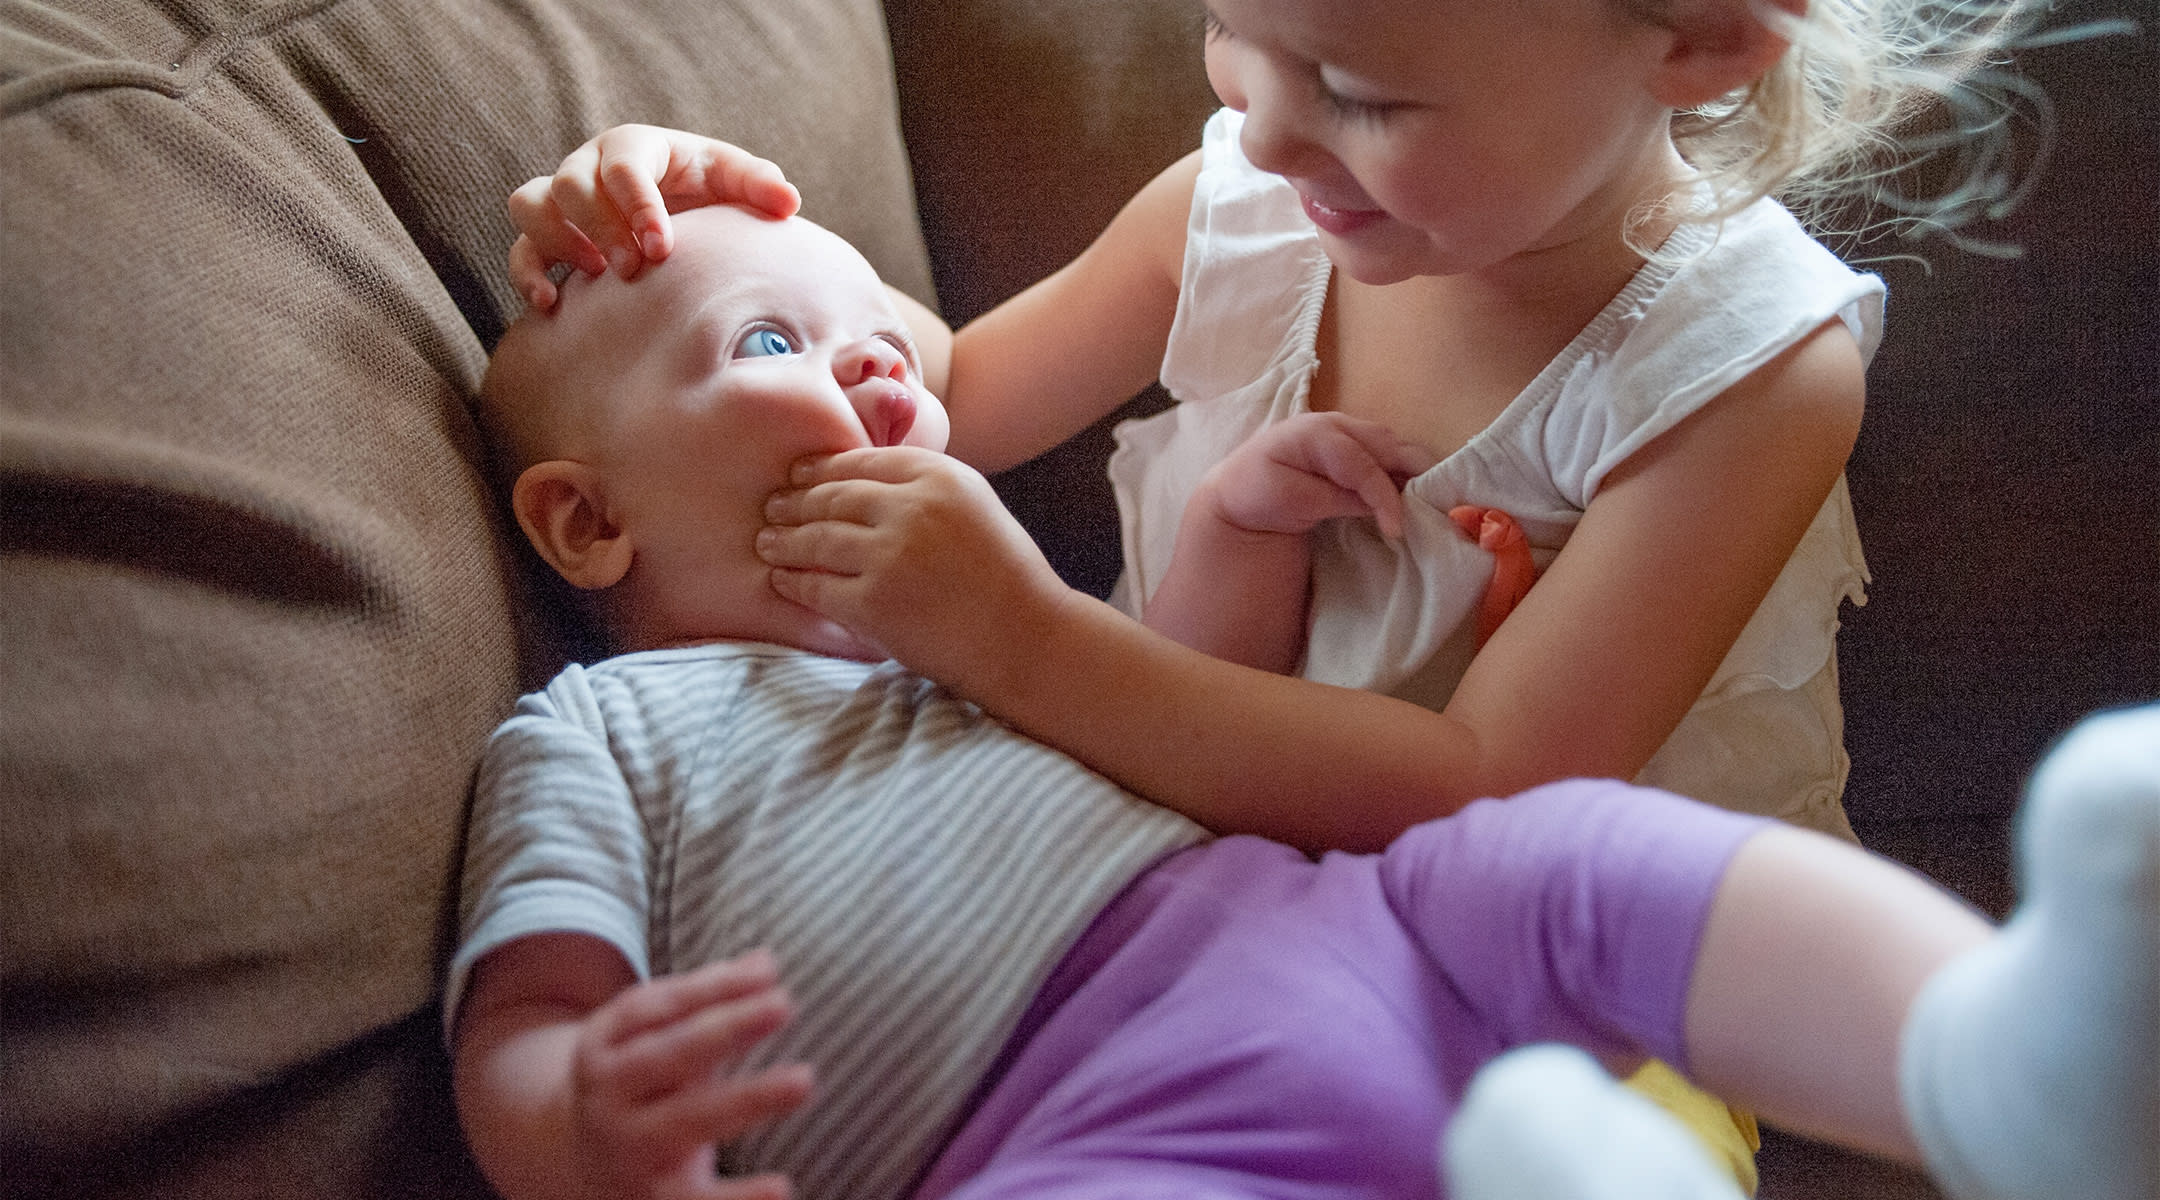 toddler with her baby sister, squishing her face